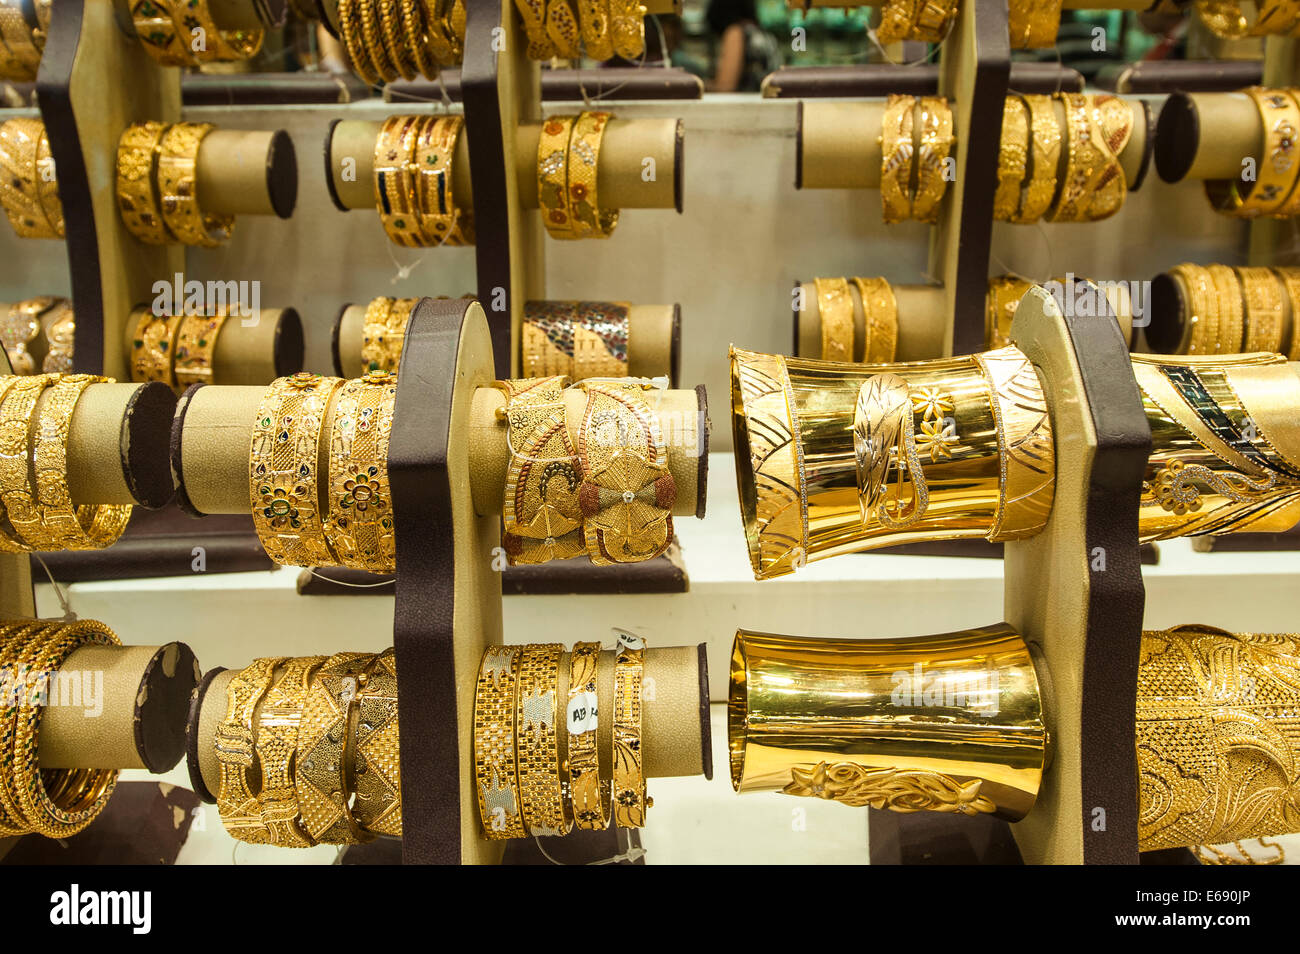 Gold jewelry bracelets in the deira gold souk market dubai for United international decor bahrain